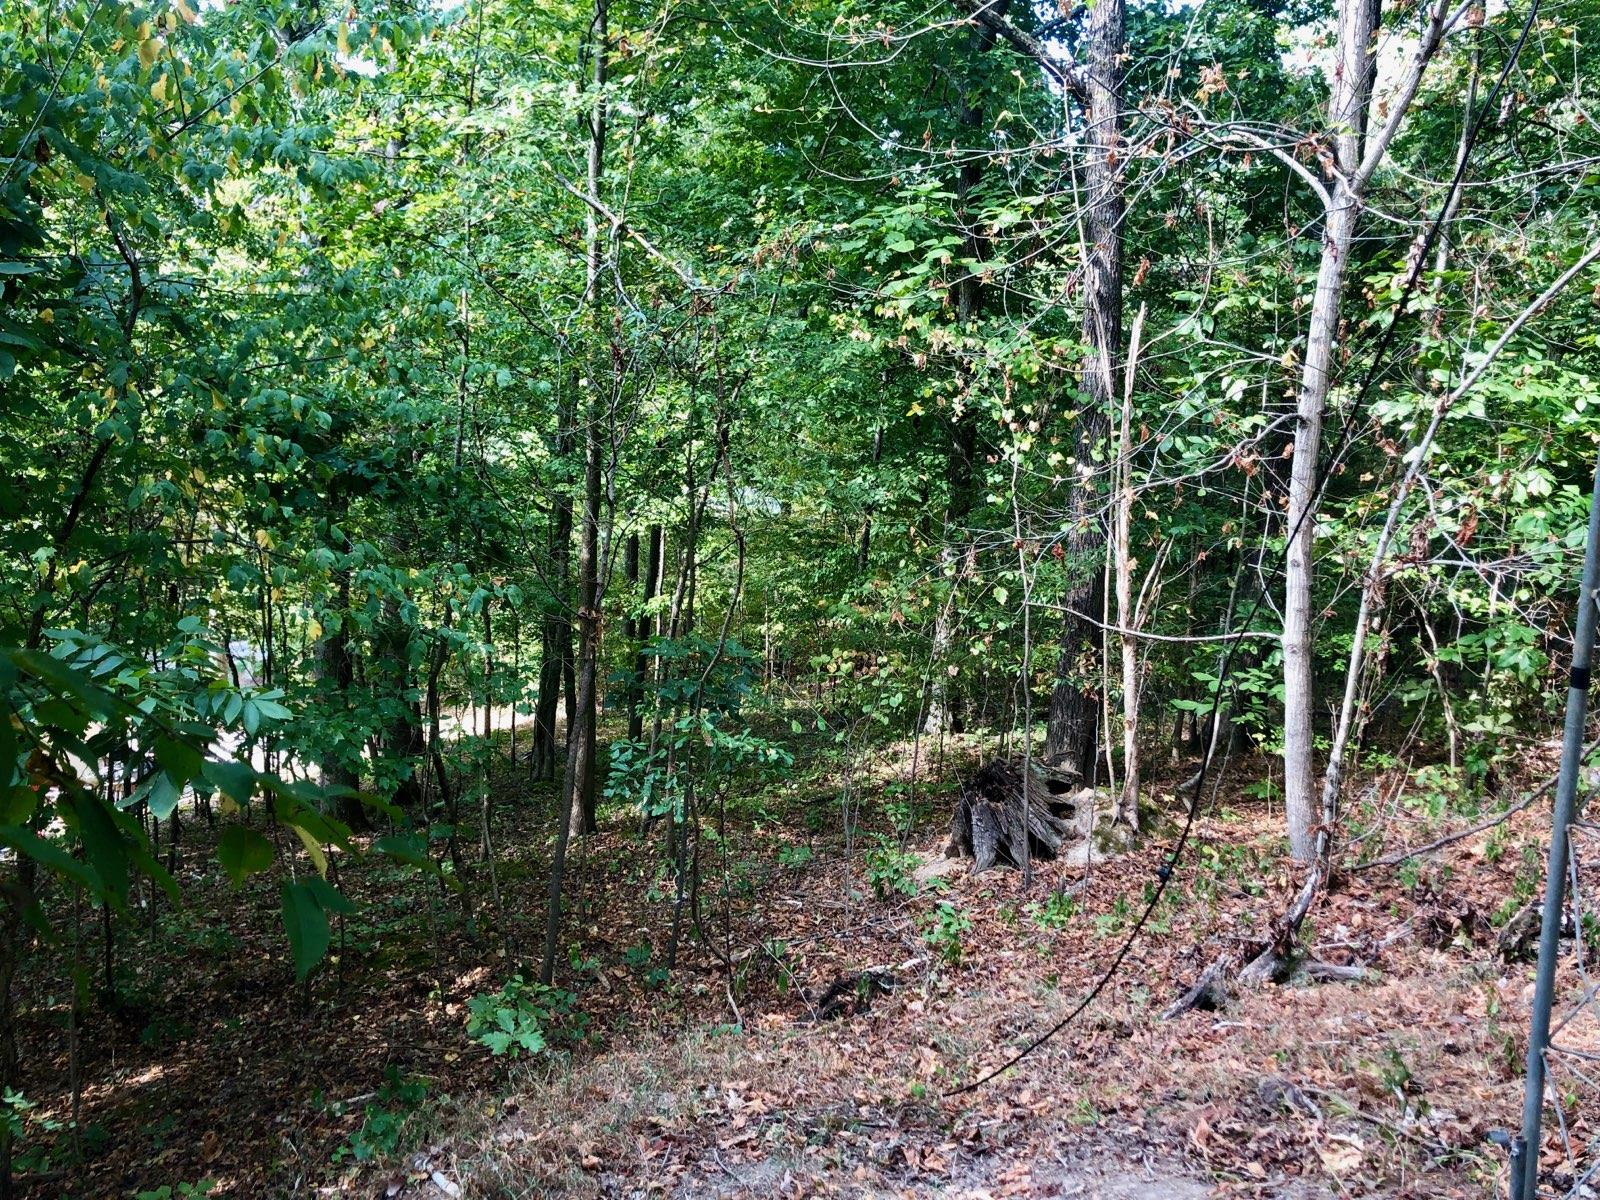 0 Kinnaird Access Rd Lot 169, Camden, TN 38320 - Camden, TN real estate listing